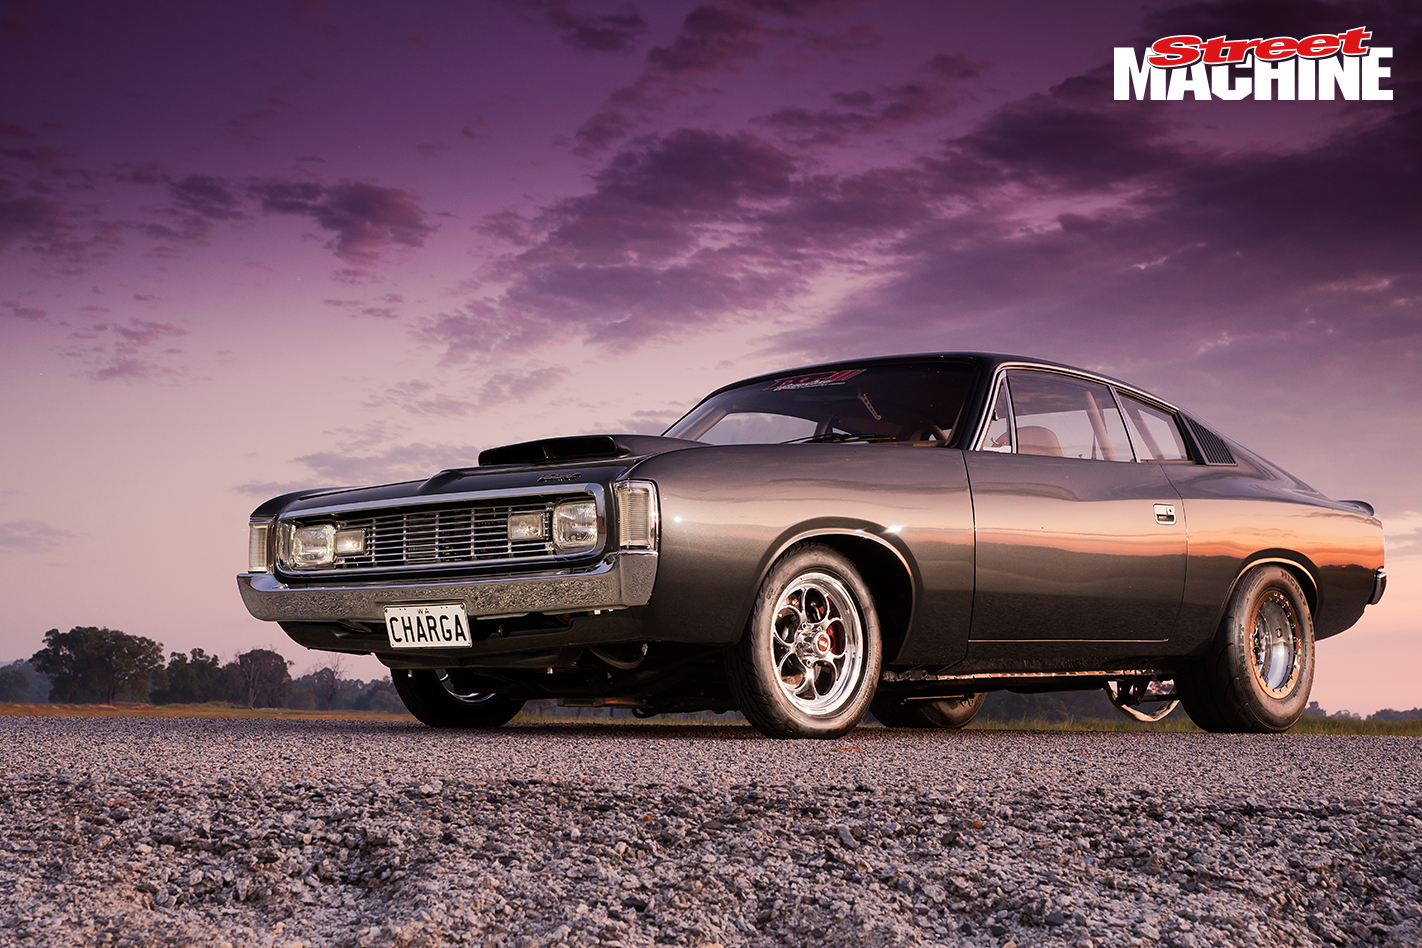 VH Valiant Charger 9 Nw